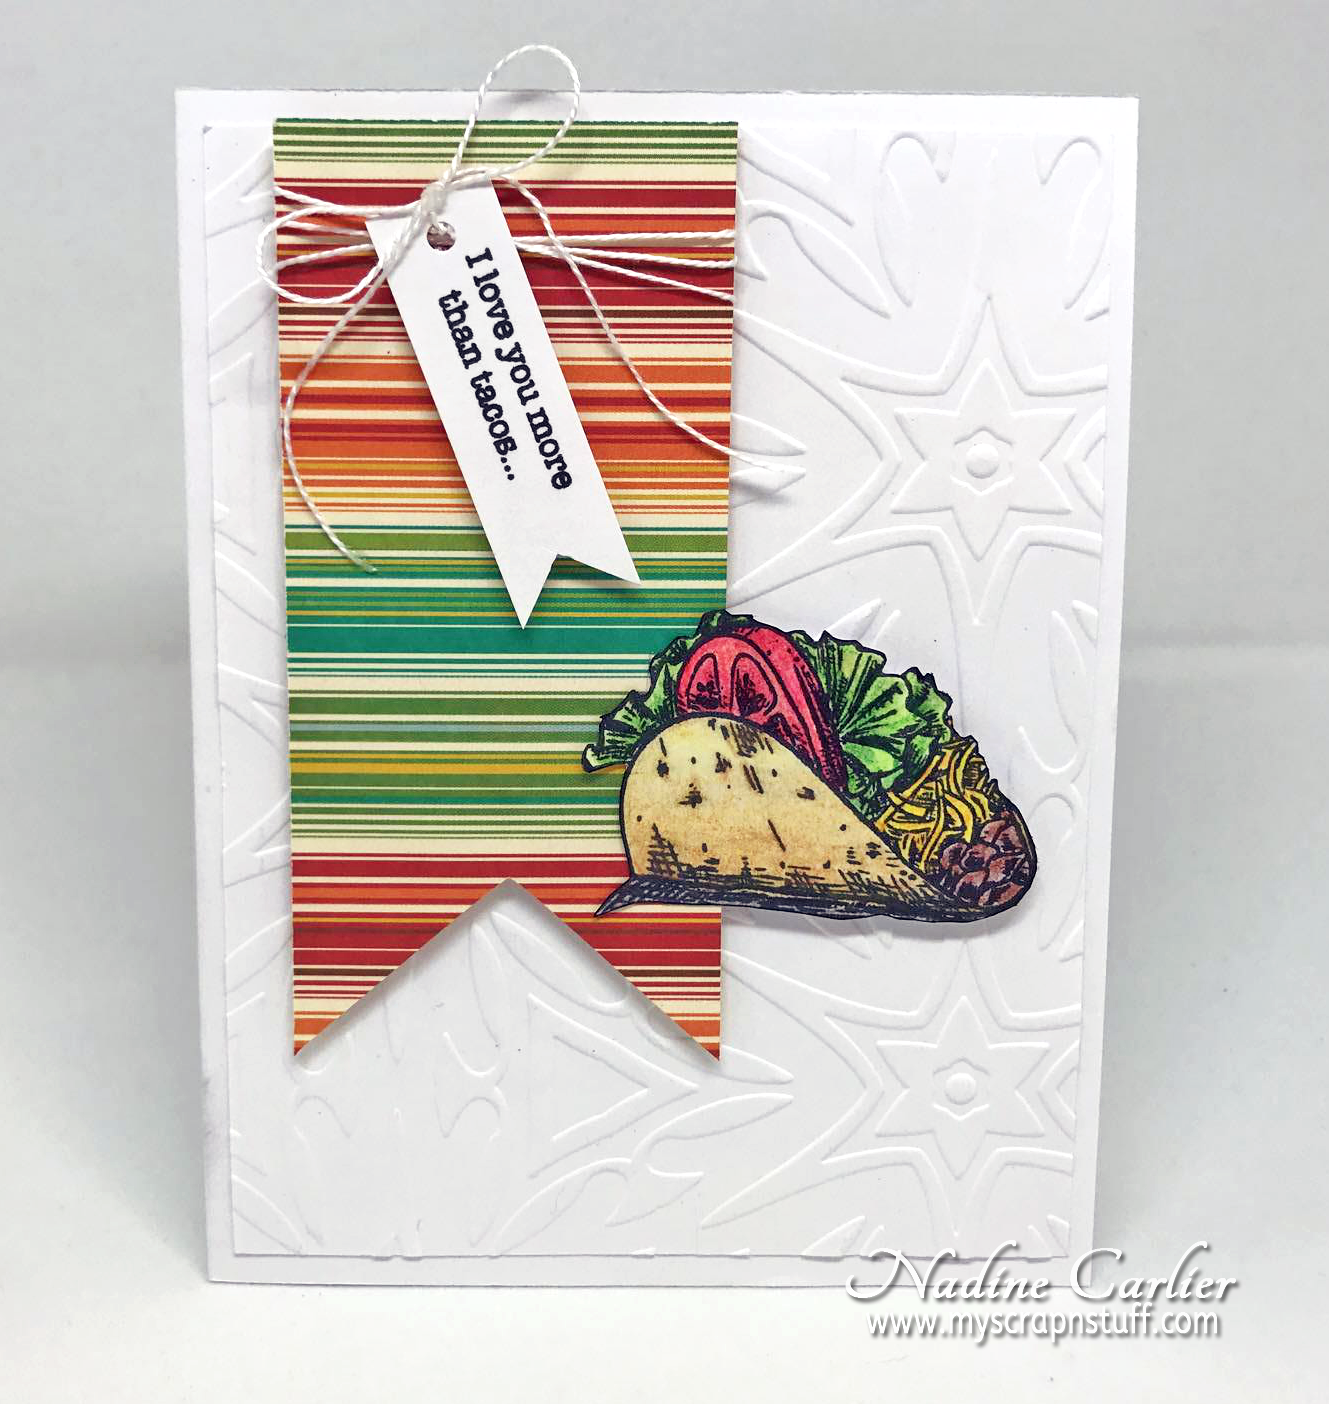 Taco Card using Brutus Monroe by Nadine Carlier